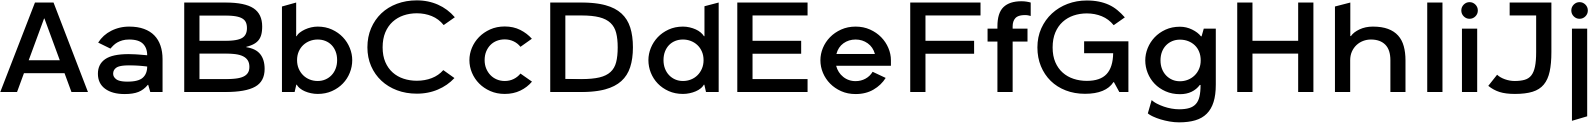 Arkibal Display Regular Font